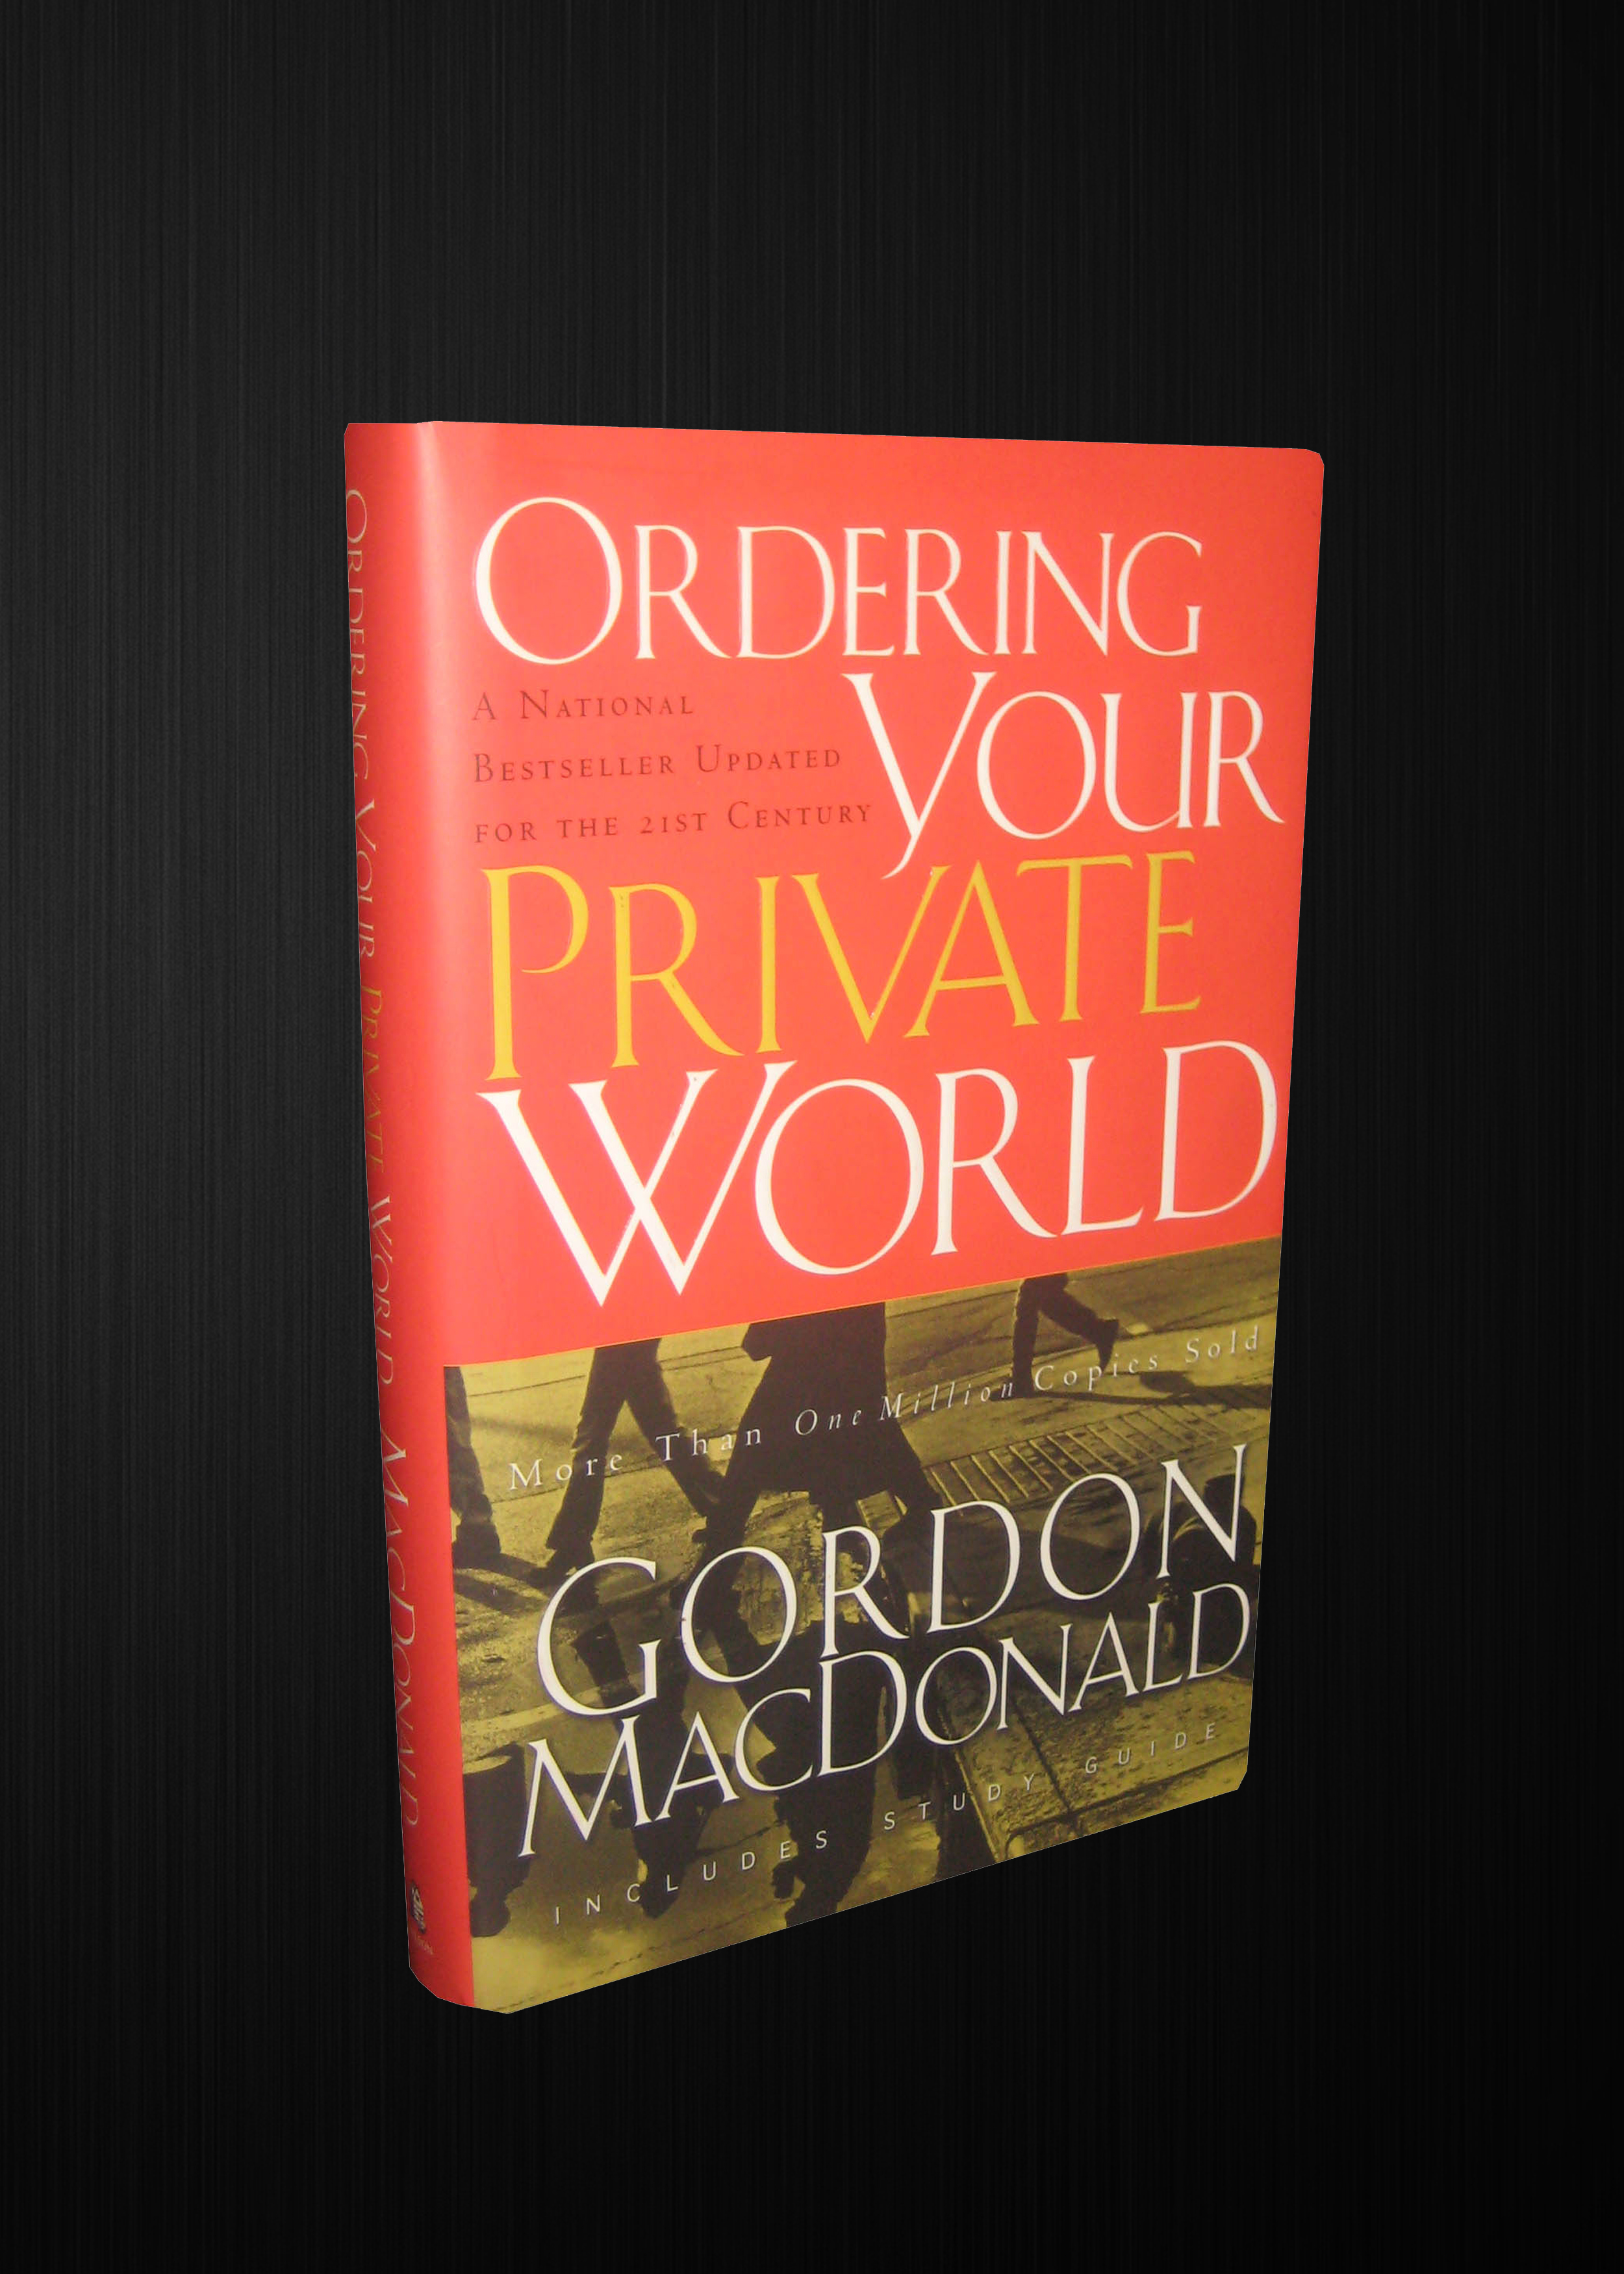 Ordering_your_private_world_image_original